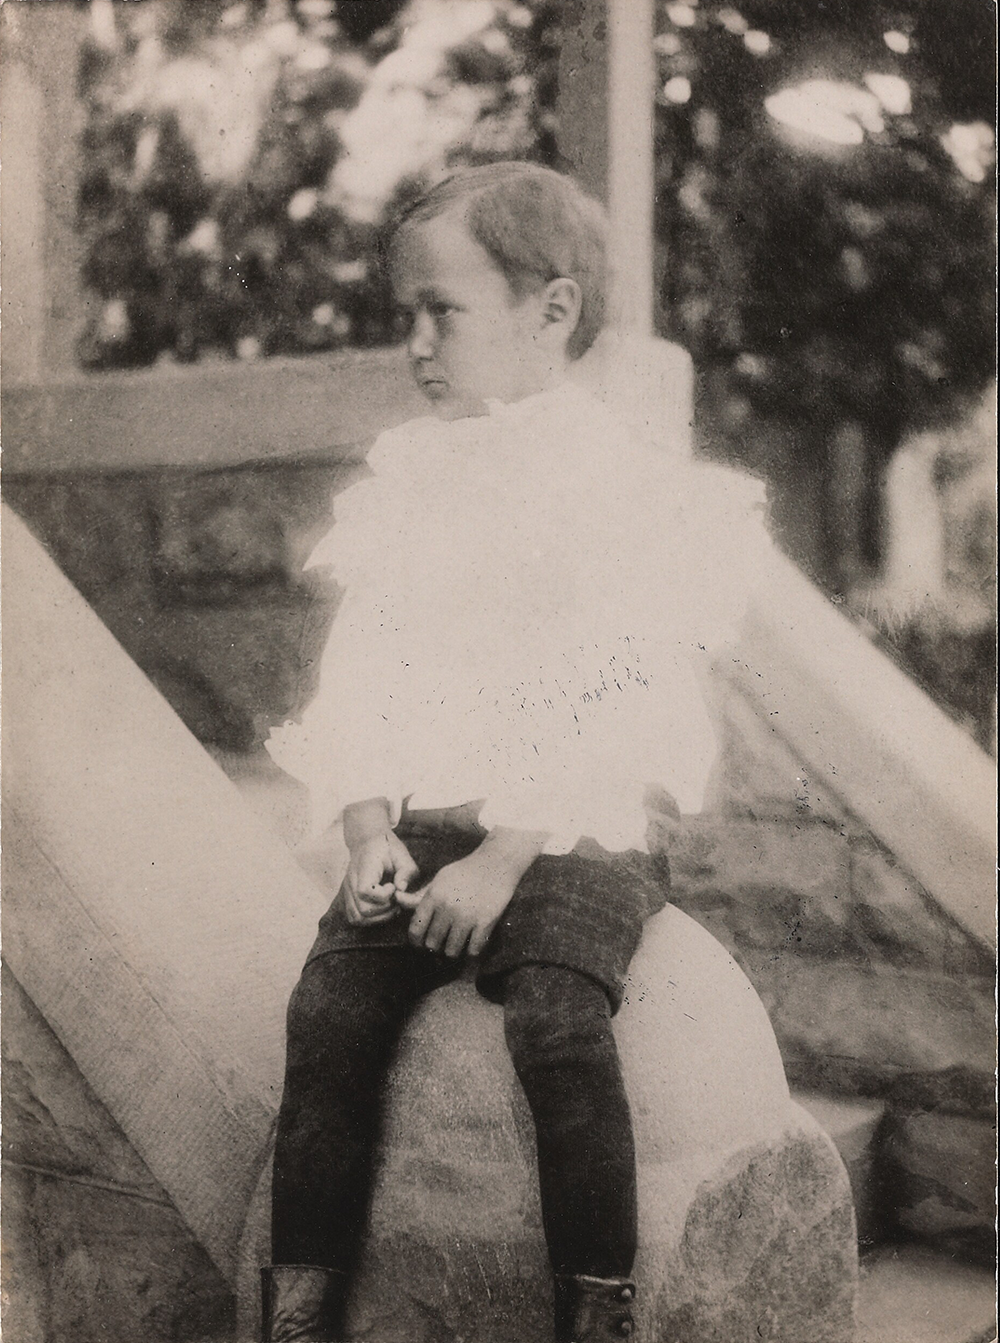 Jean Toomer as a child. Jean Toomer Papers, James Weldon Johnson Memorial Collection in the Yale Collection of American Literature, Beinecke Rare Book and Manuscript Library, Yale University.